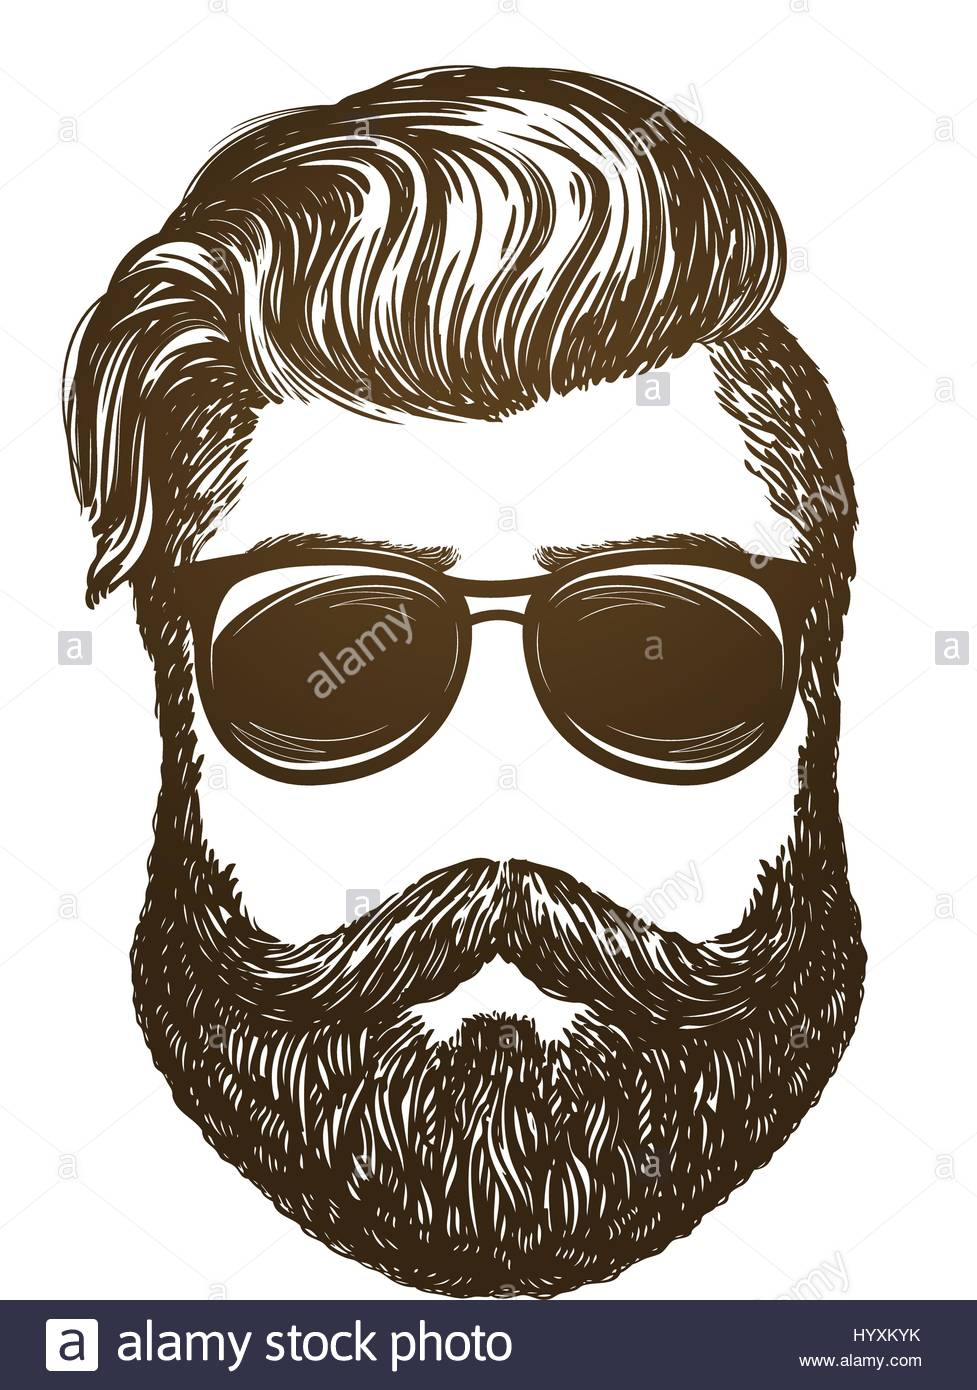 977x1390 Hand Drawn Portrait Of Man With Beard. Hipster, Sunglasses Sketch